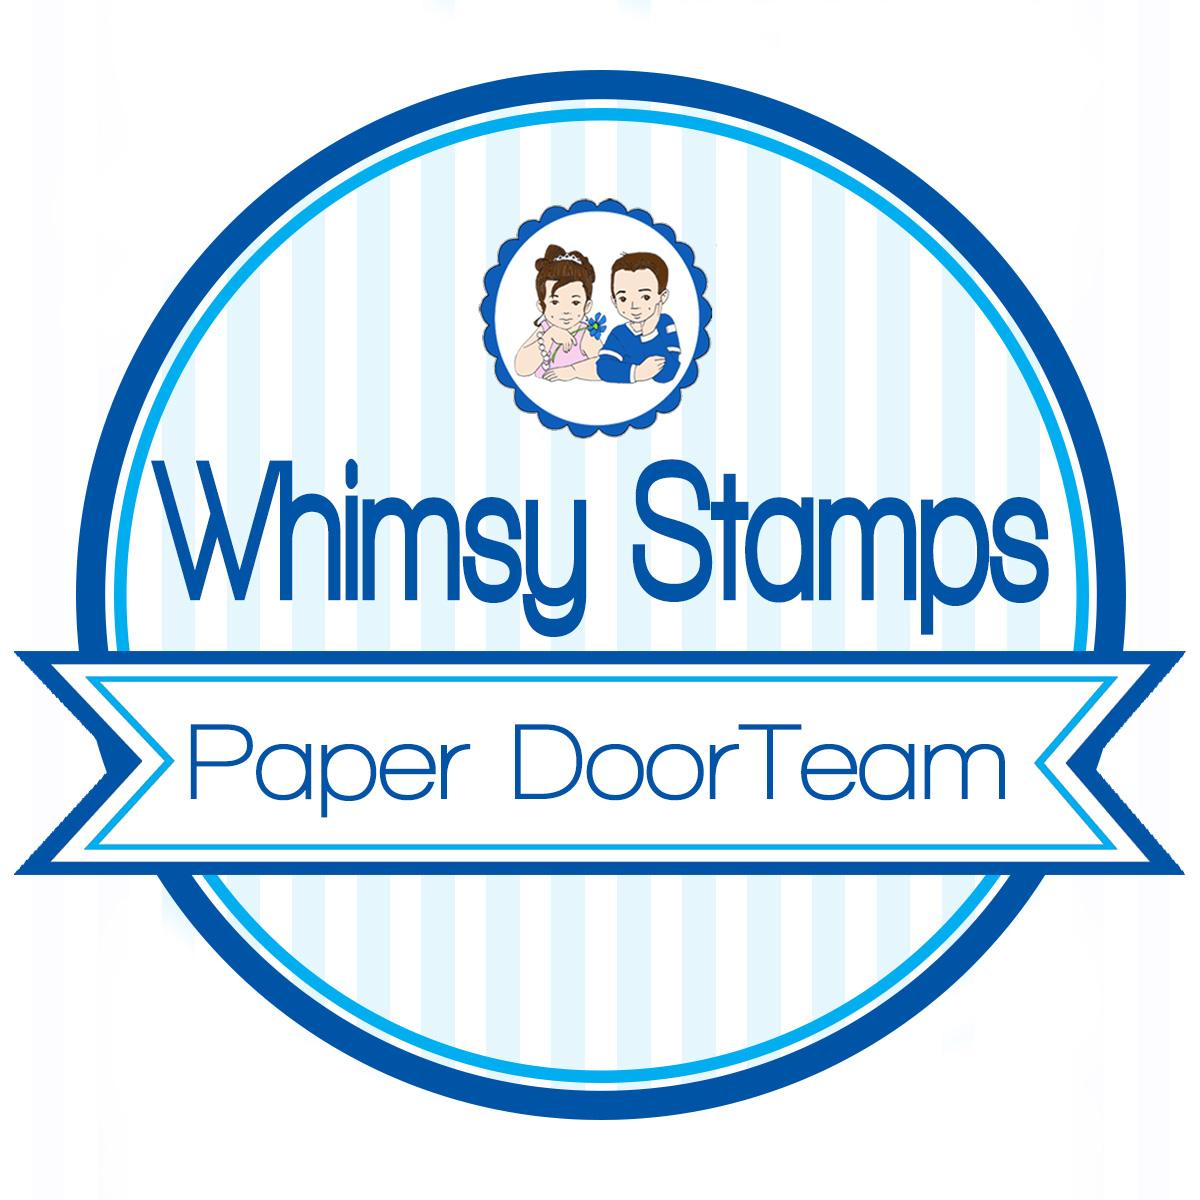 ~ Designing for Whimsy Stamps Paper Door ~